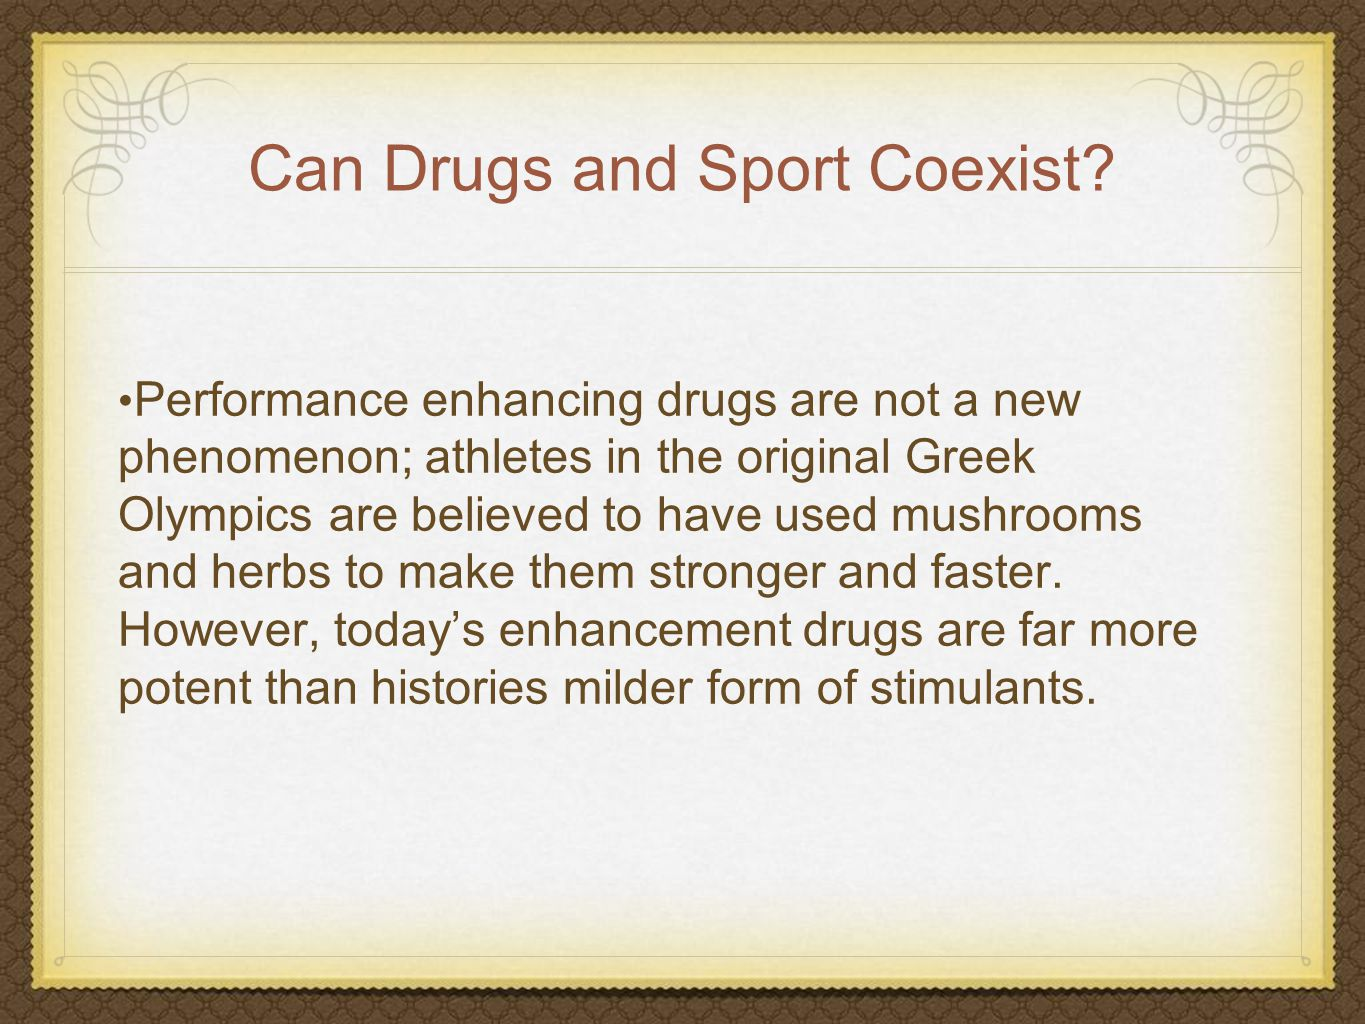 pros and cons of performance enhancement drugs Advantages and disadvantages of testing for performance enhancing drugs exam aswers search engine  submit pros & cons of drug testing in sports | healthfully.